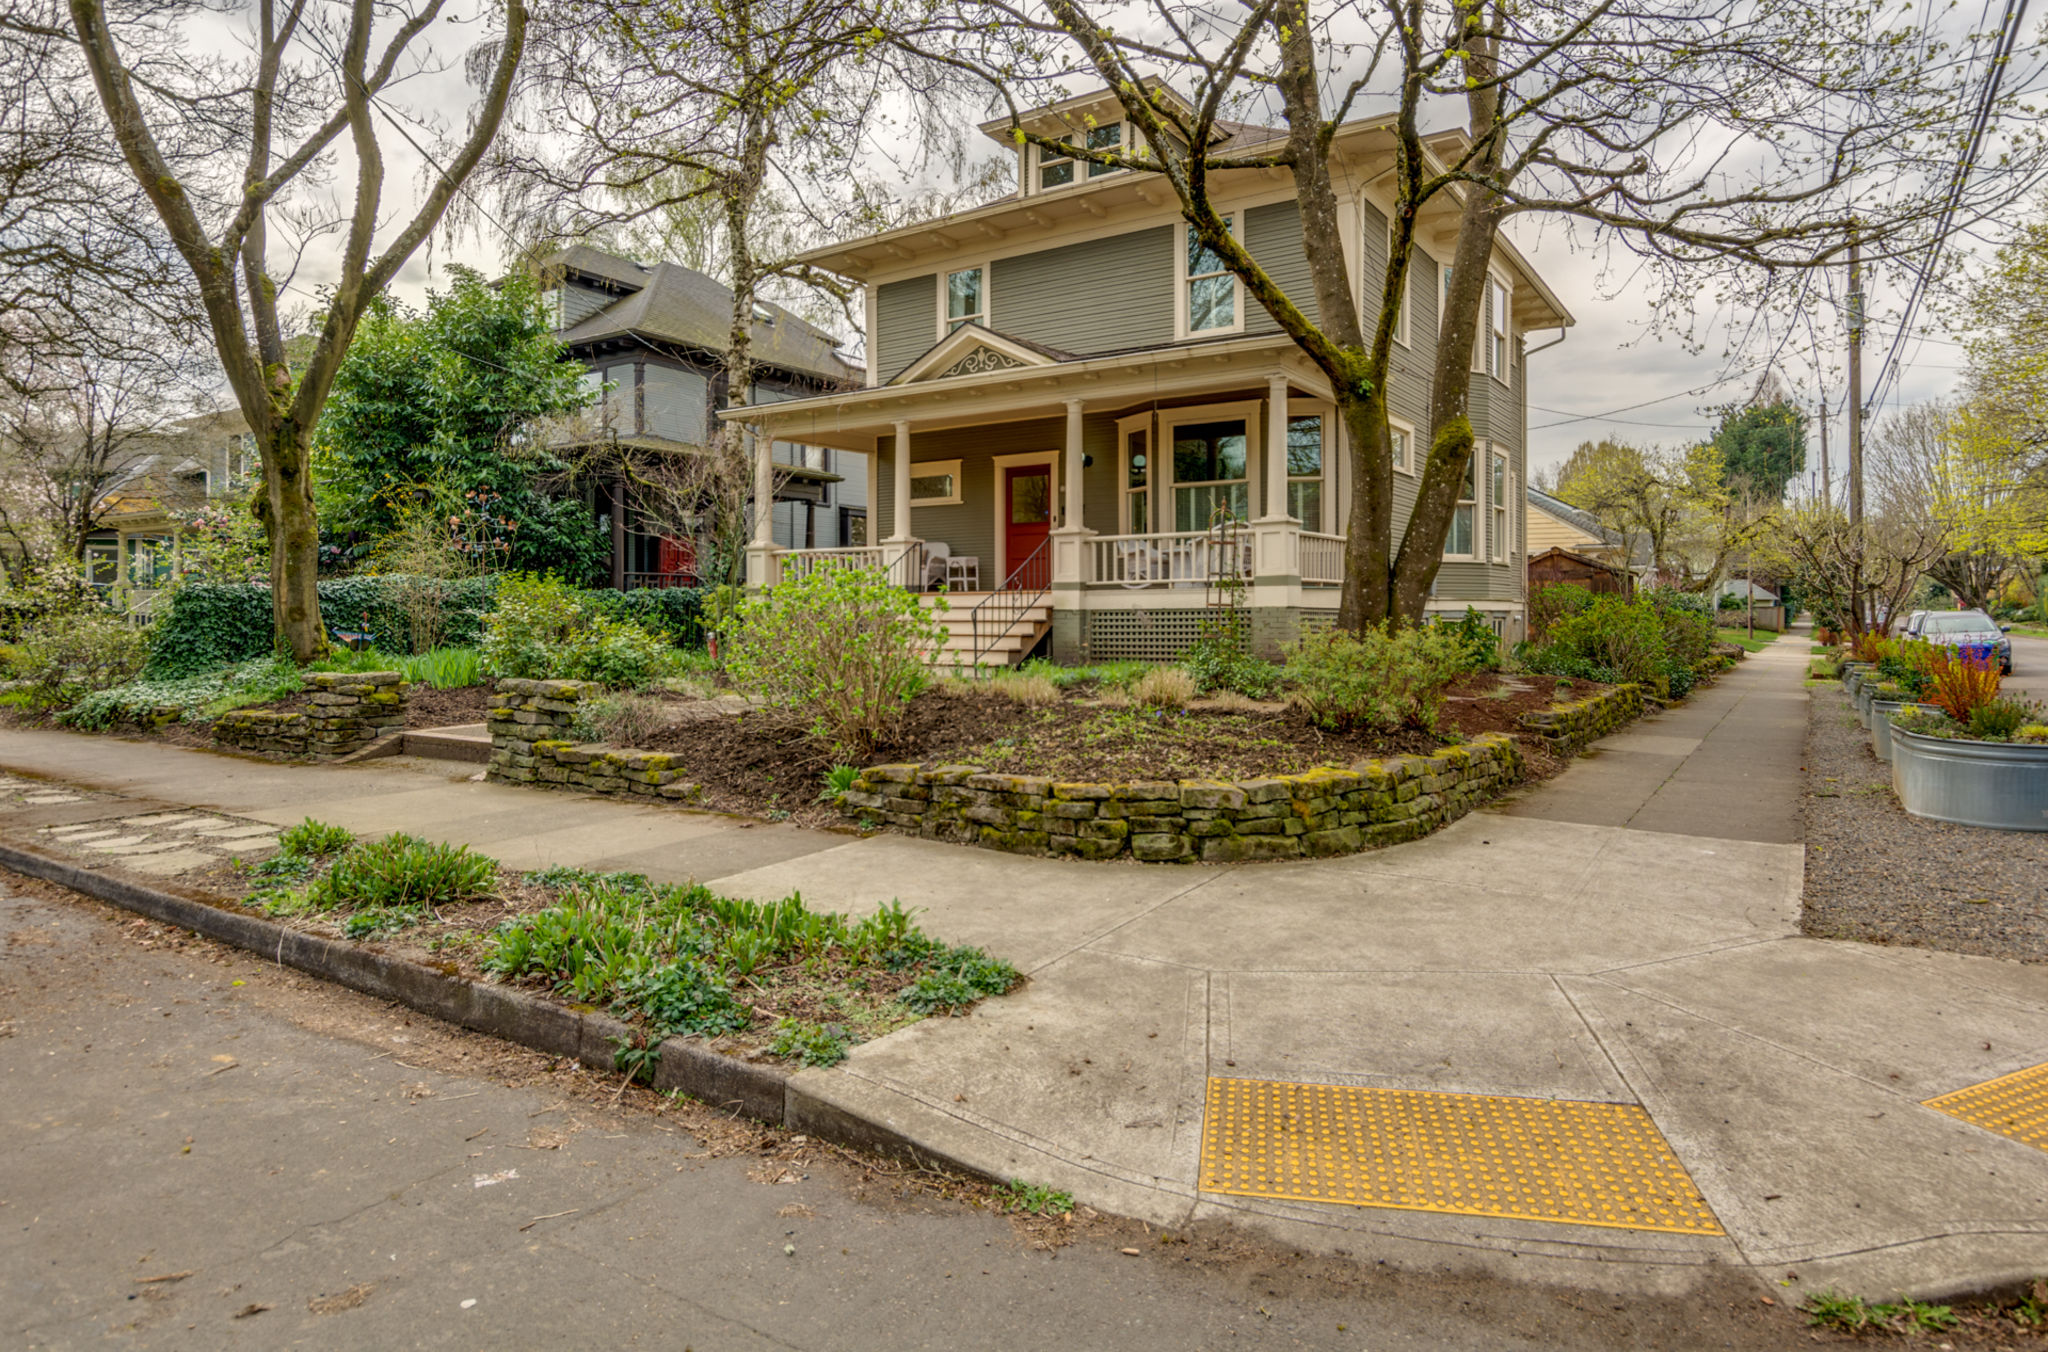 2243_ne_11th_ave__portland_15_ipad_pro